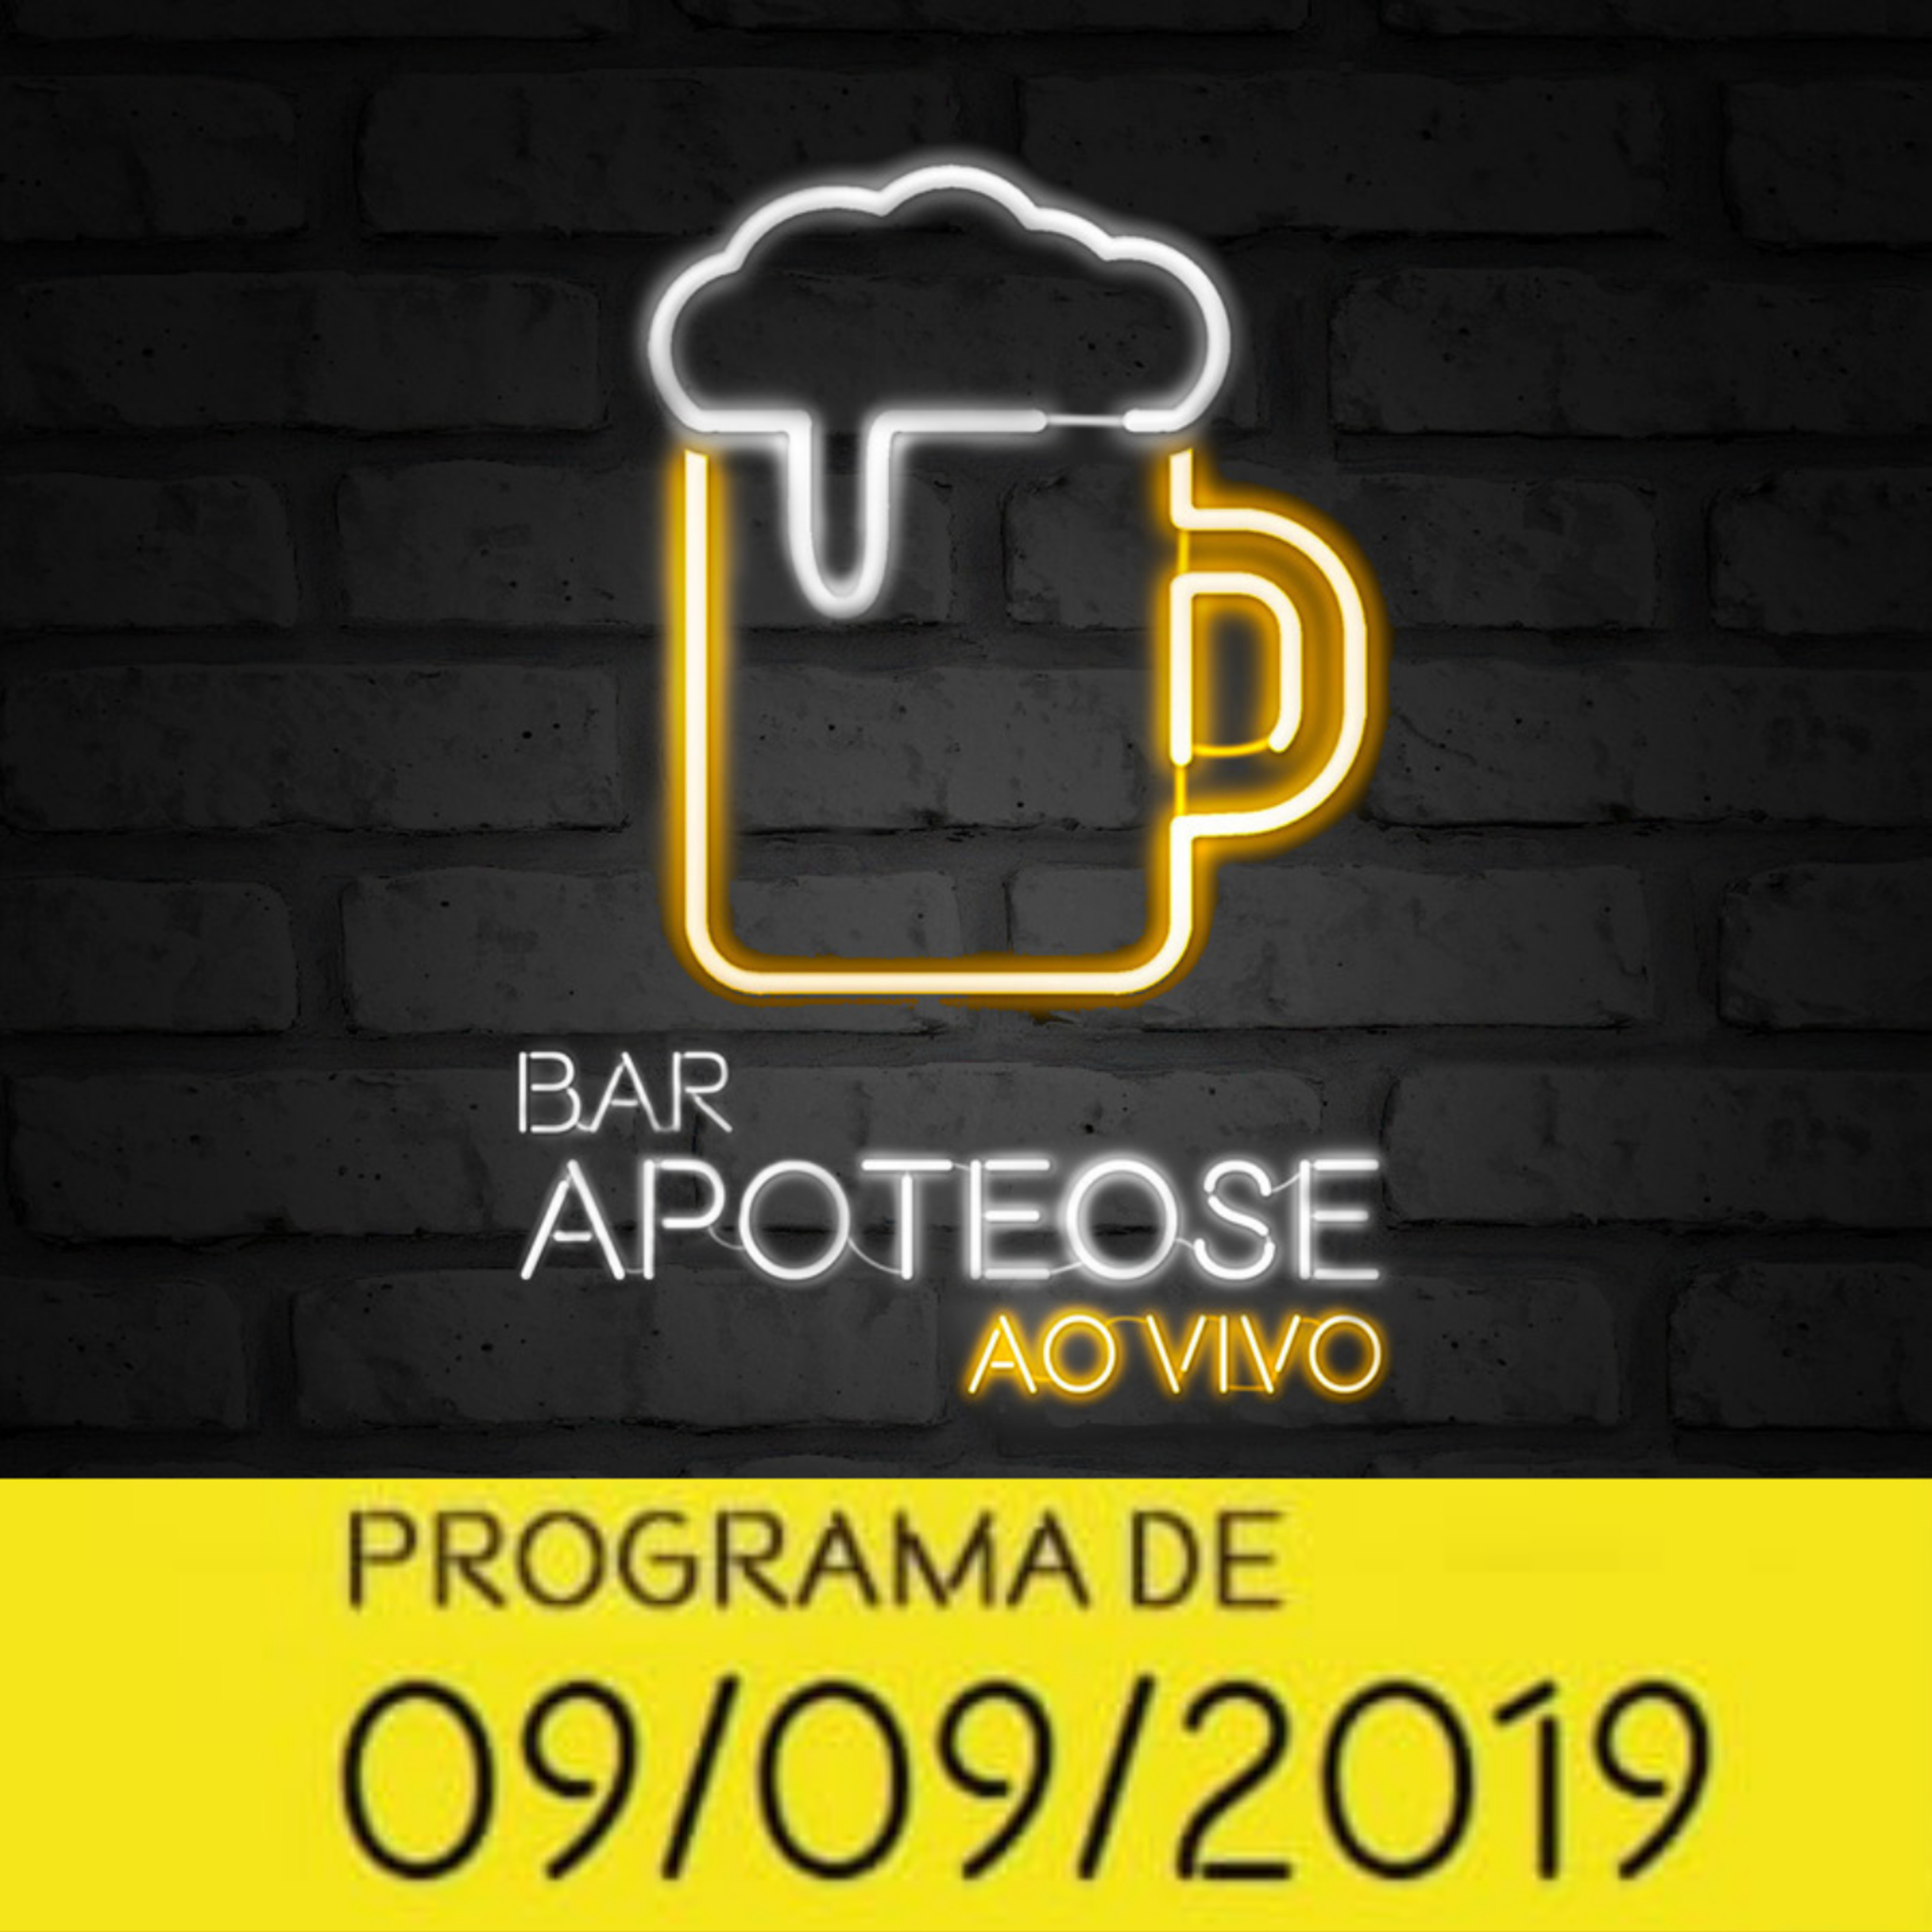 Bar Apoteose Ao Vivo - 09/09/19